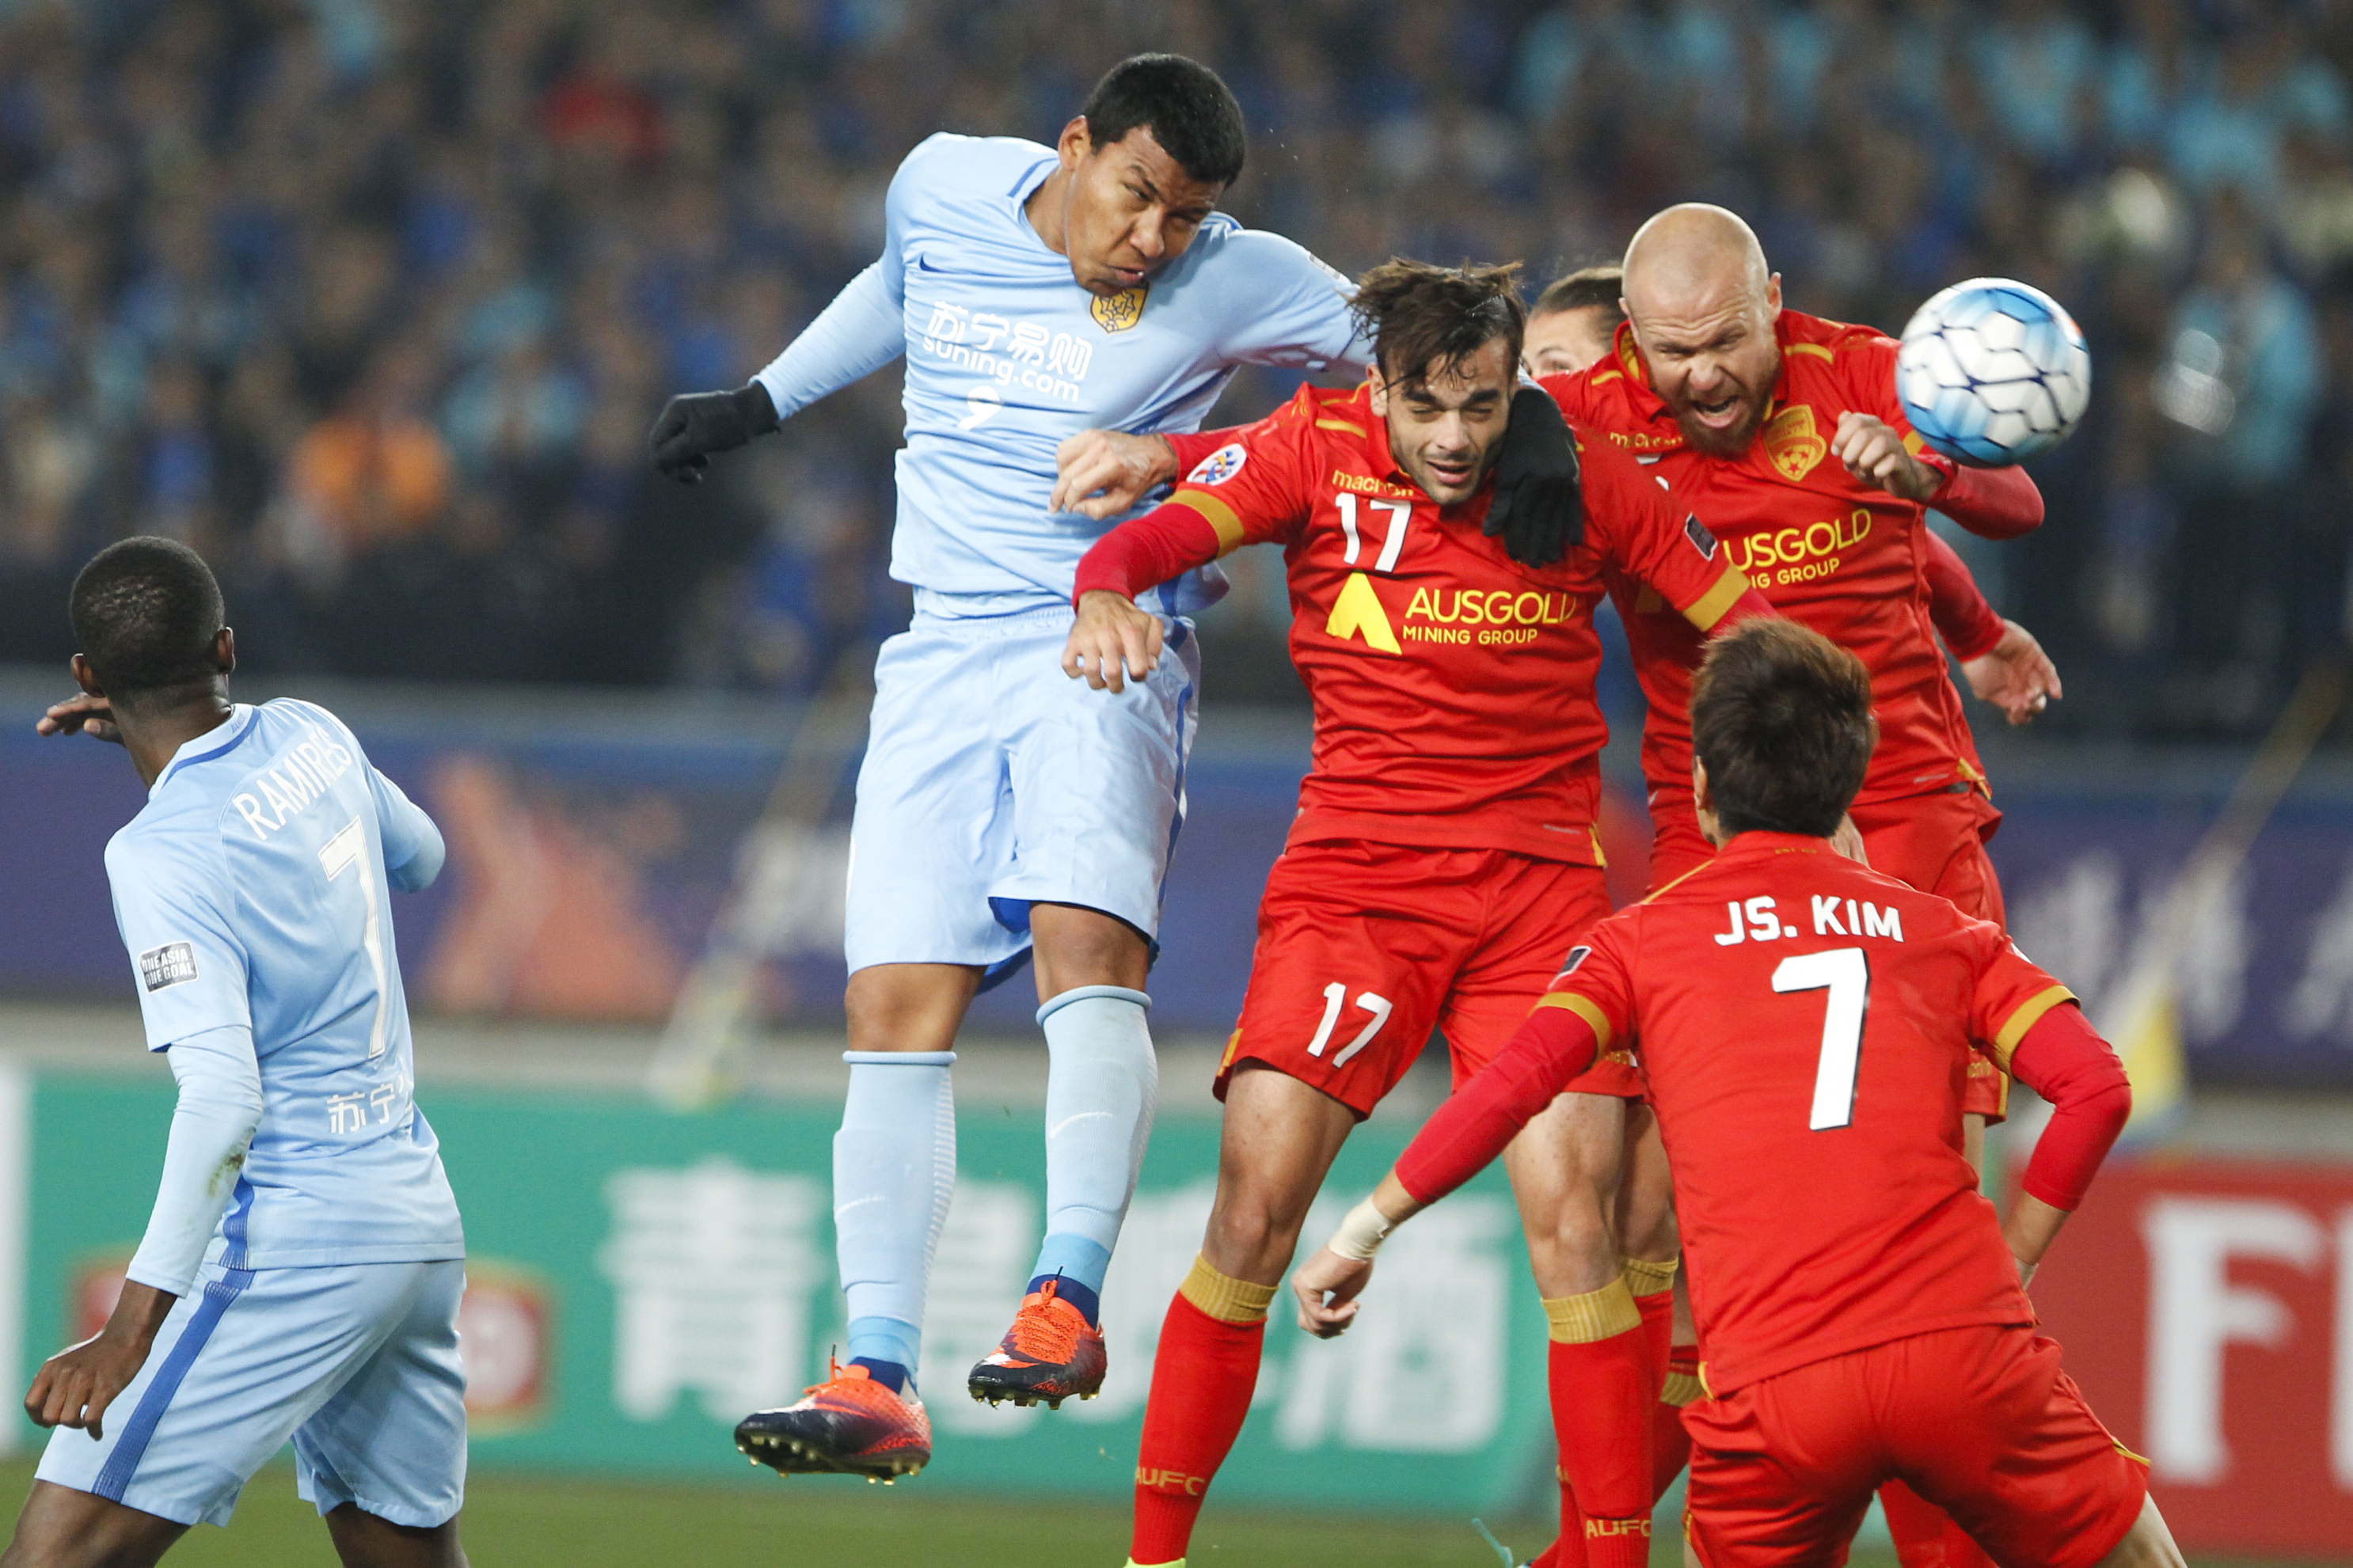 Roger Martinez #9 of Jiangsu Suning and Nikola Mileusnic #17 of Adelaide United compete for the ball during the AFC Champions League 2017 Group H match between Jiangsu Suning and Adelaide United